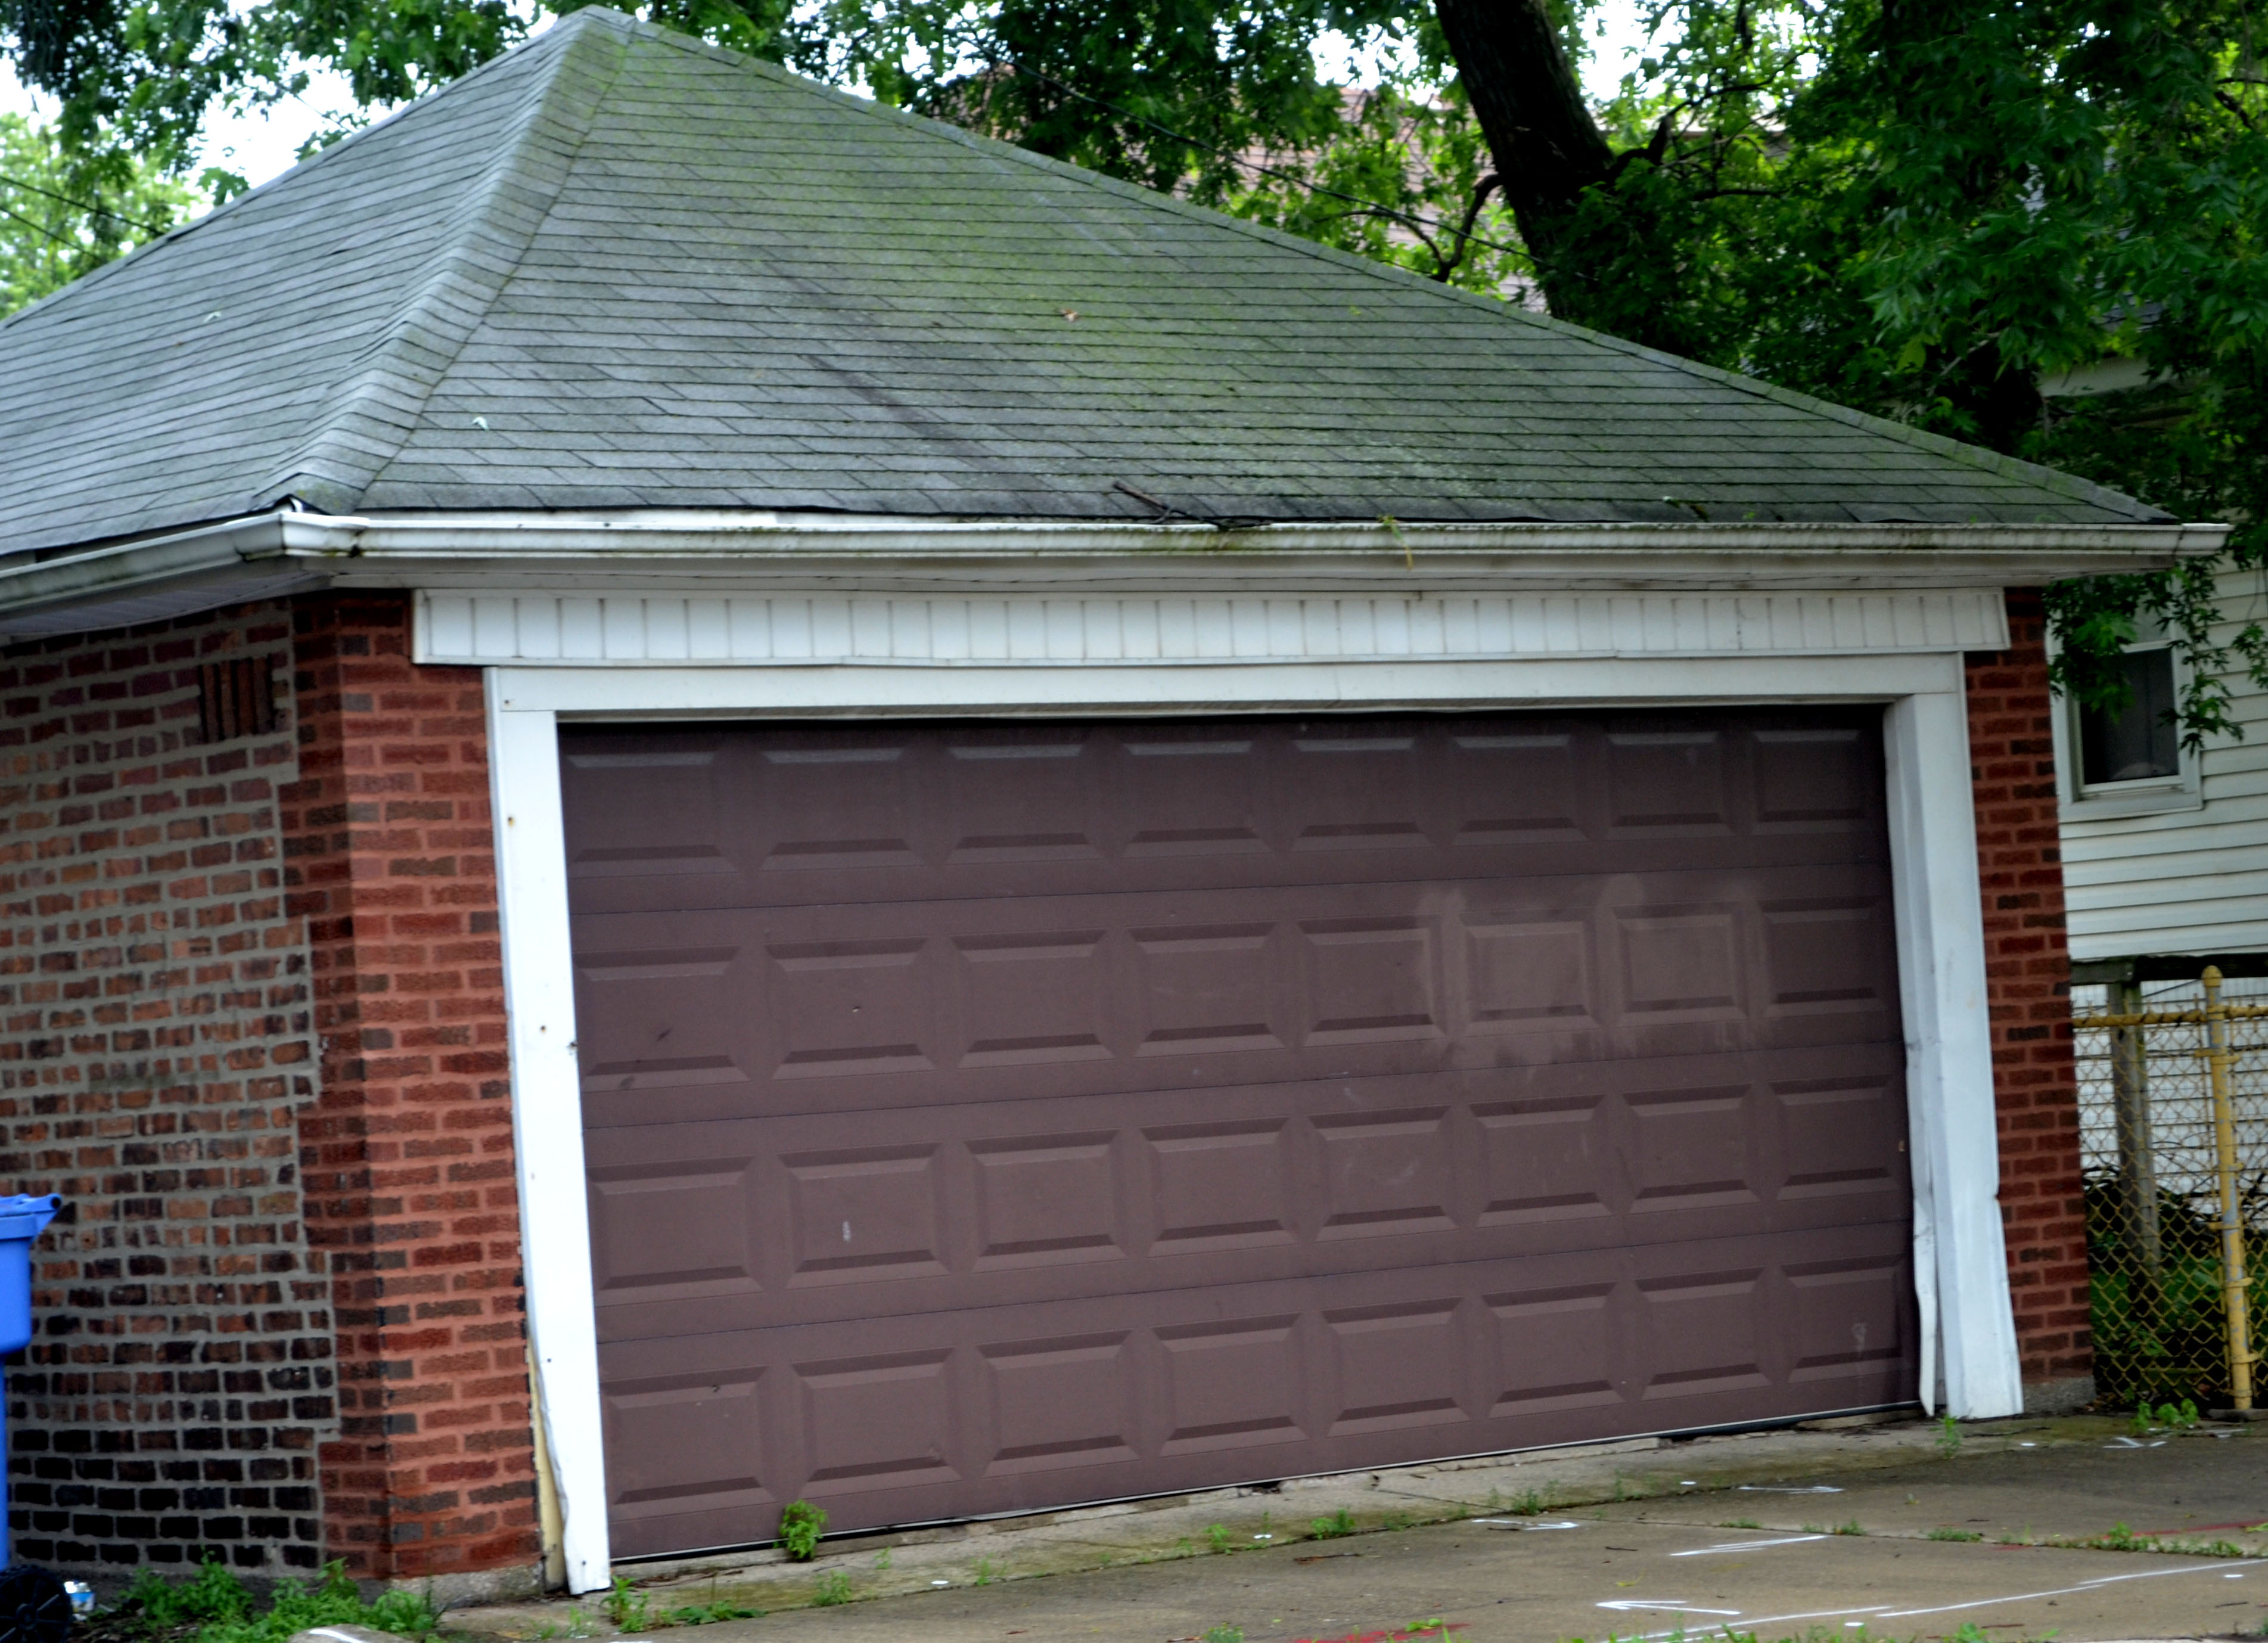 A burglar took bikes and tools from unlocked garages since March 19, 2020, in Beverly and Morgan Park on the South Side.